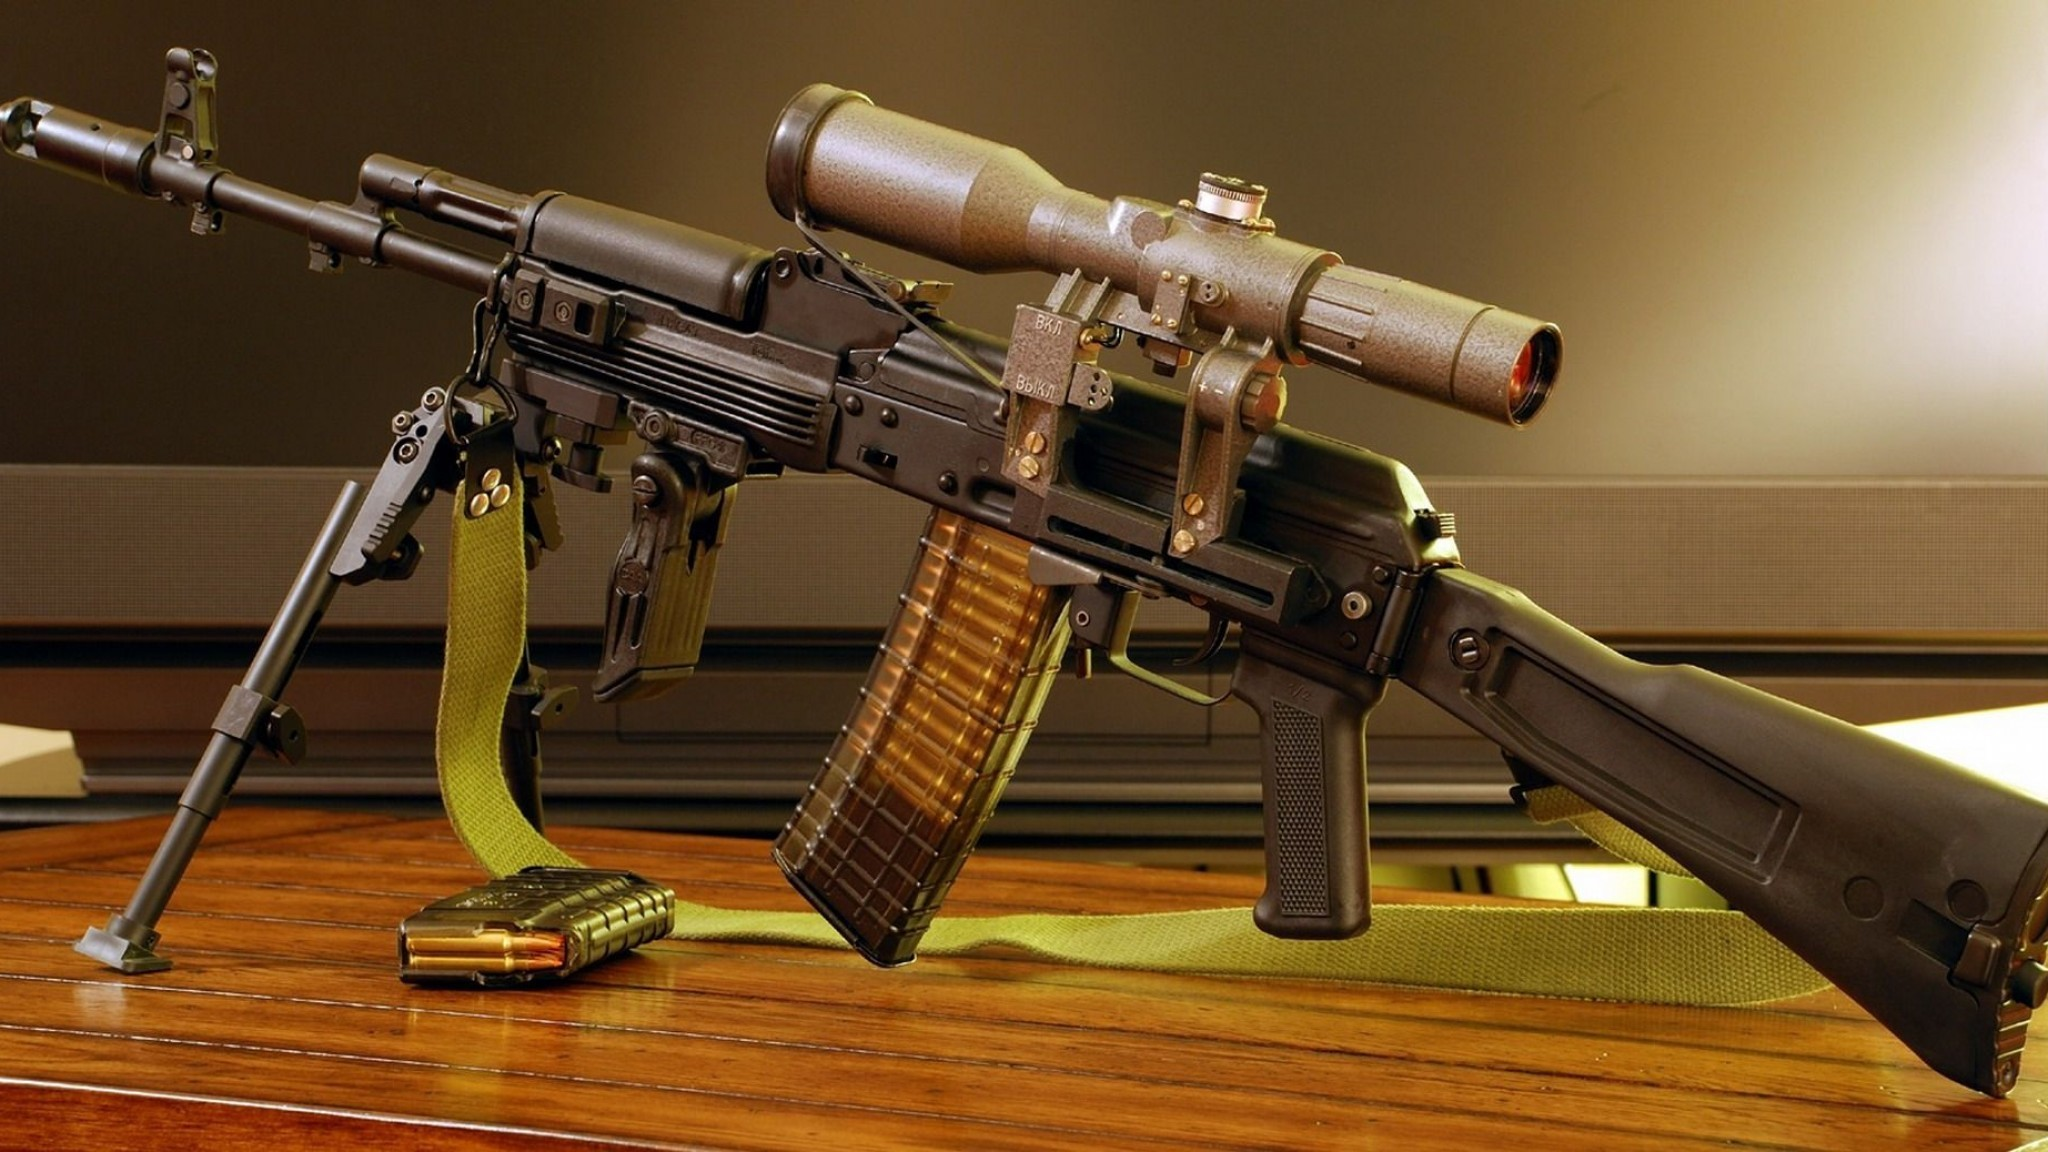 2048x1152 AK 47 Weapon Gun Military Guns Wallpaper Ak47 Gold